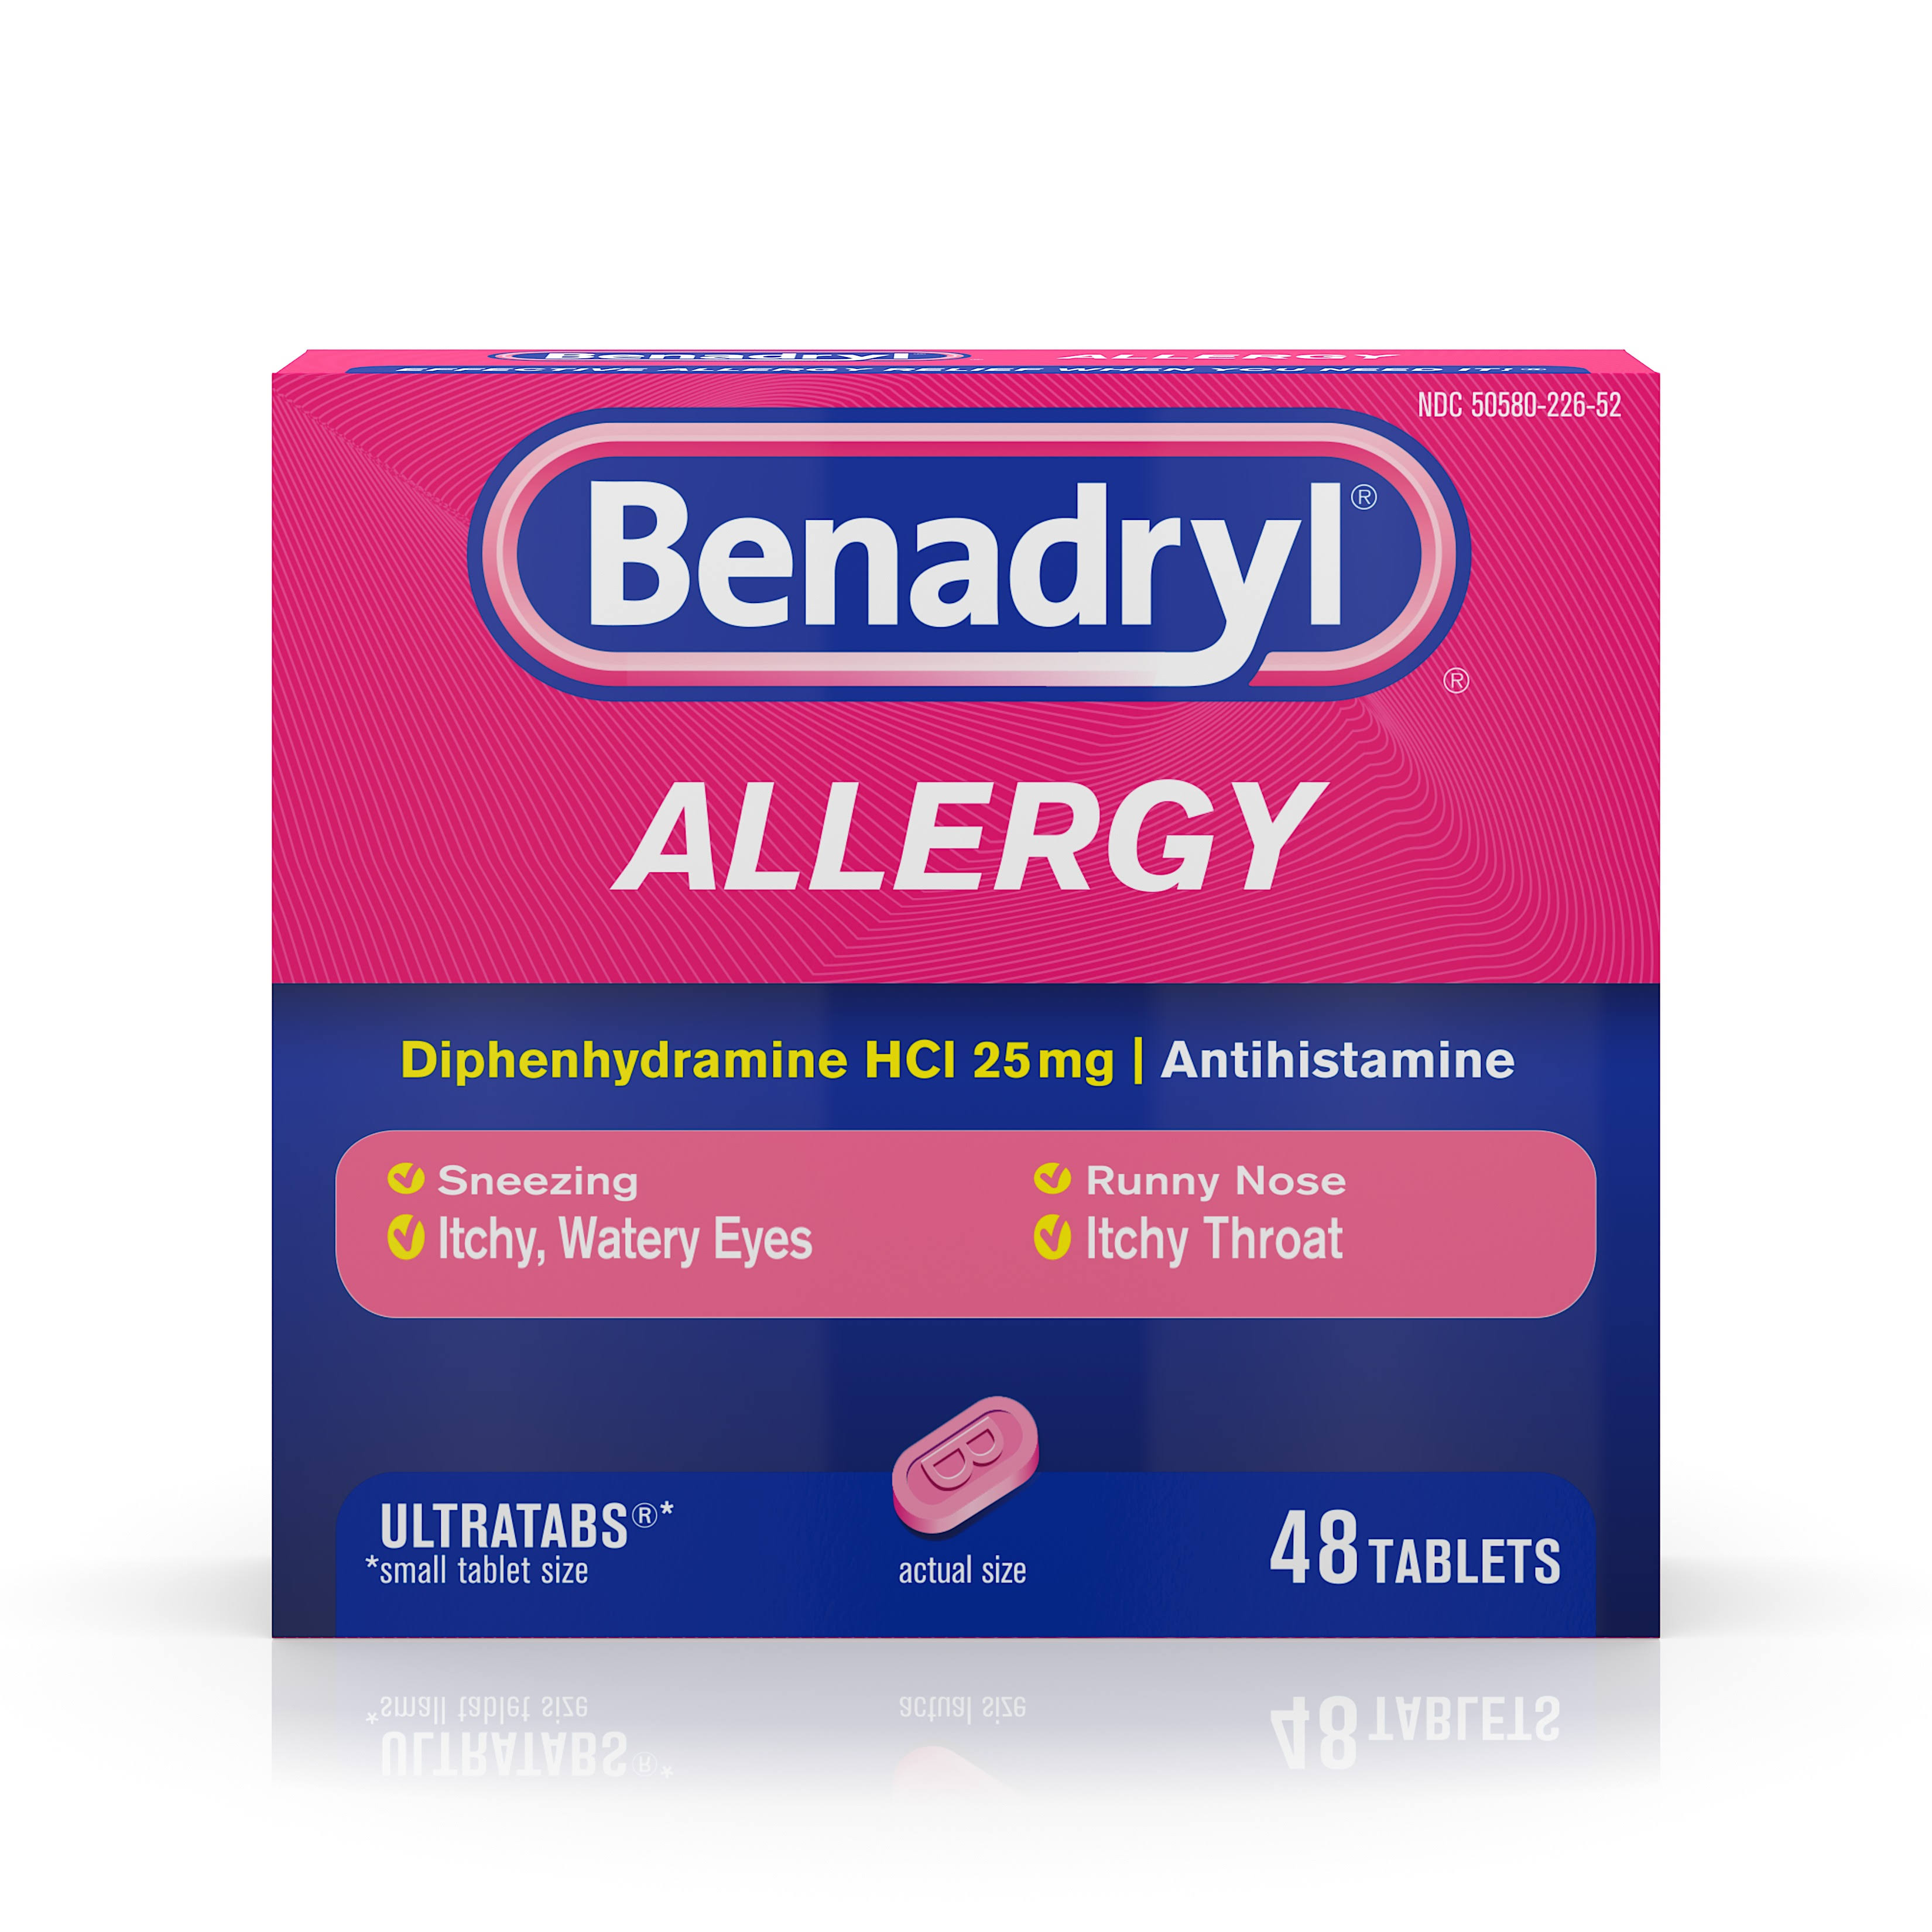 Benadryl Allergy Ultratabs - 48 Tablets, 25mg